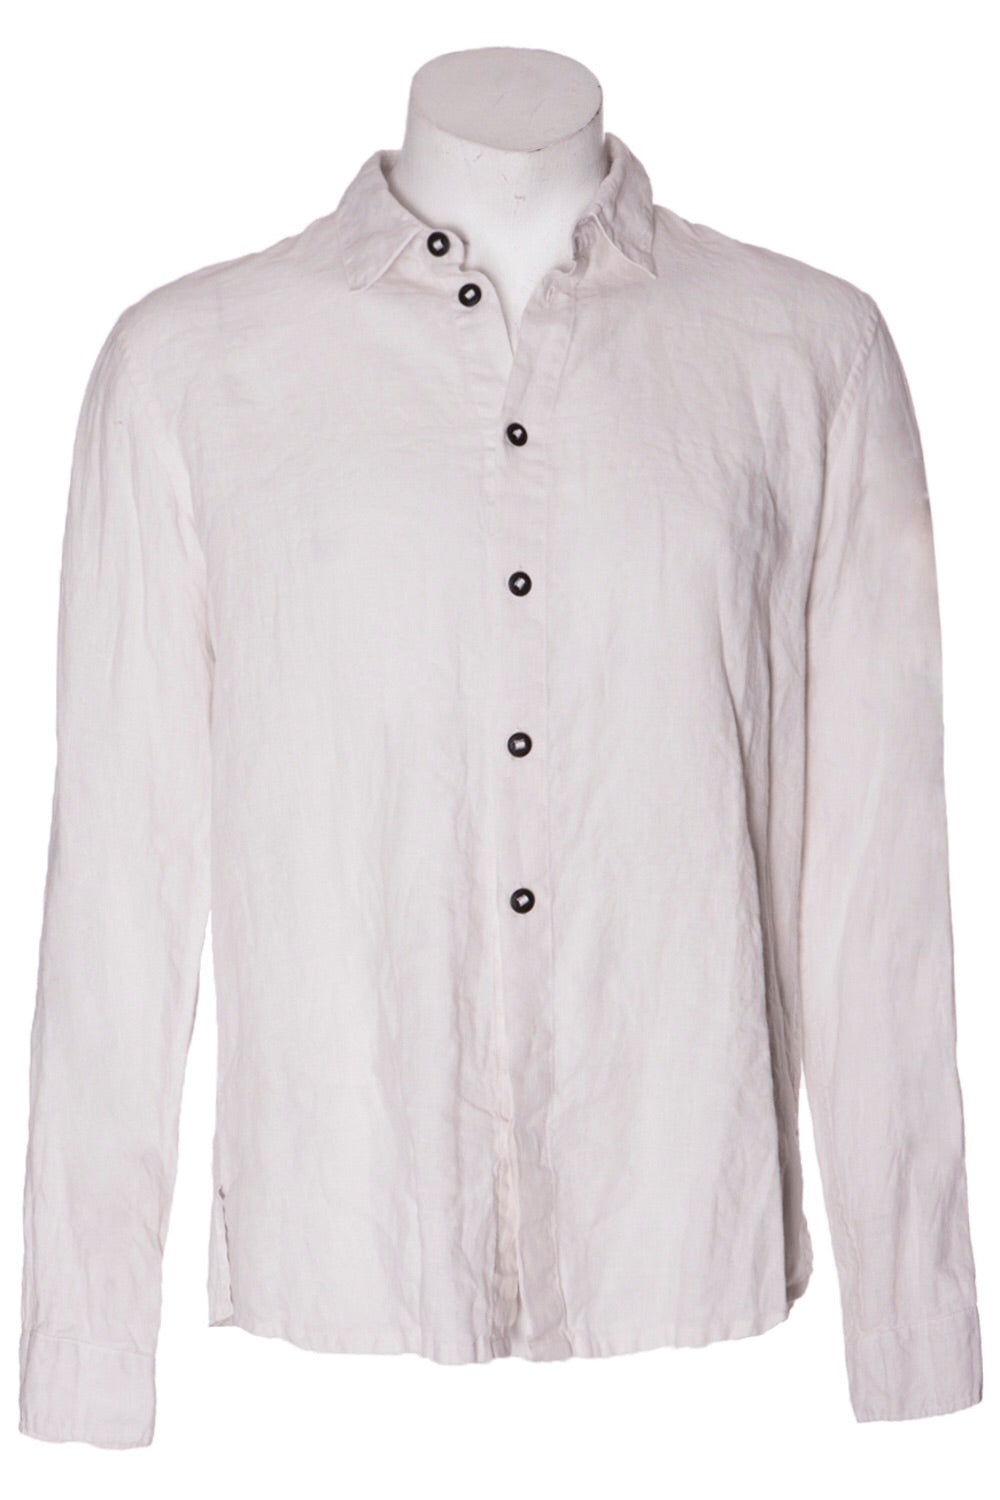 LAST ONE!! - Hannes Roether Linen Shirt